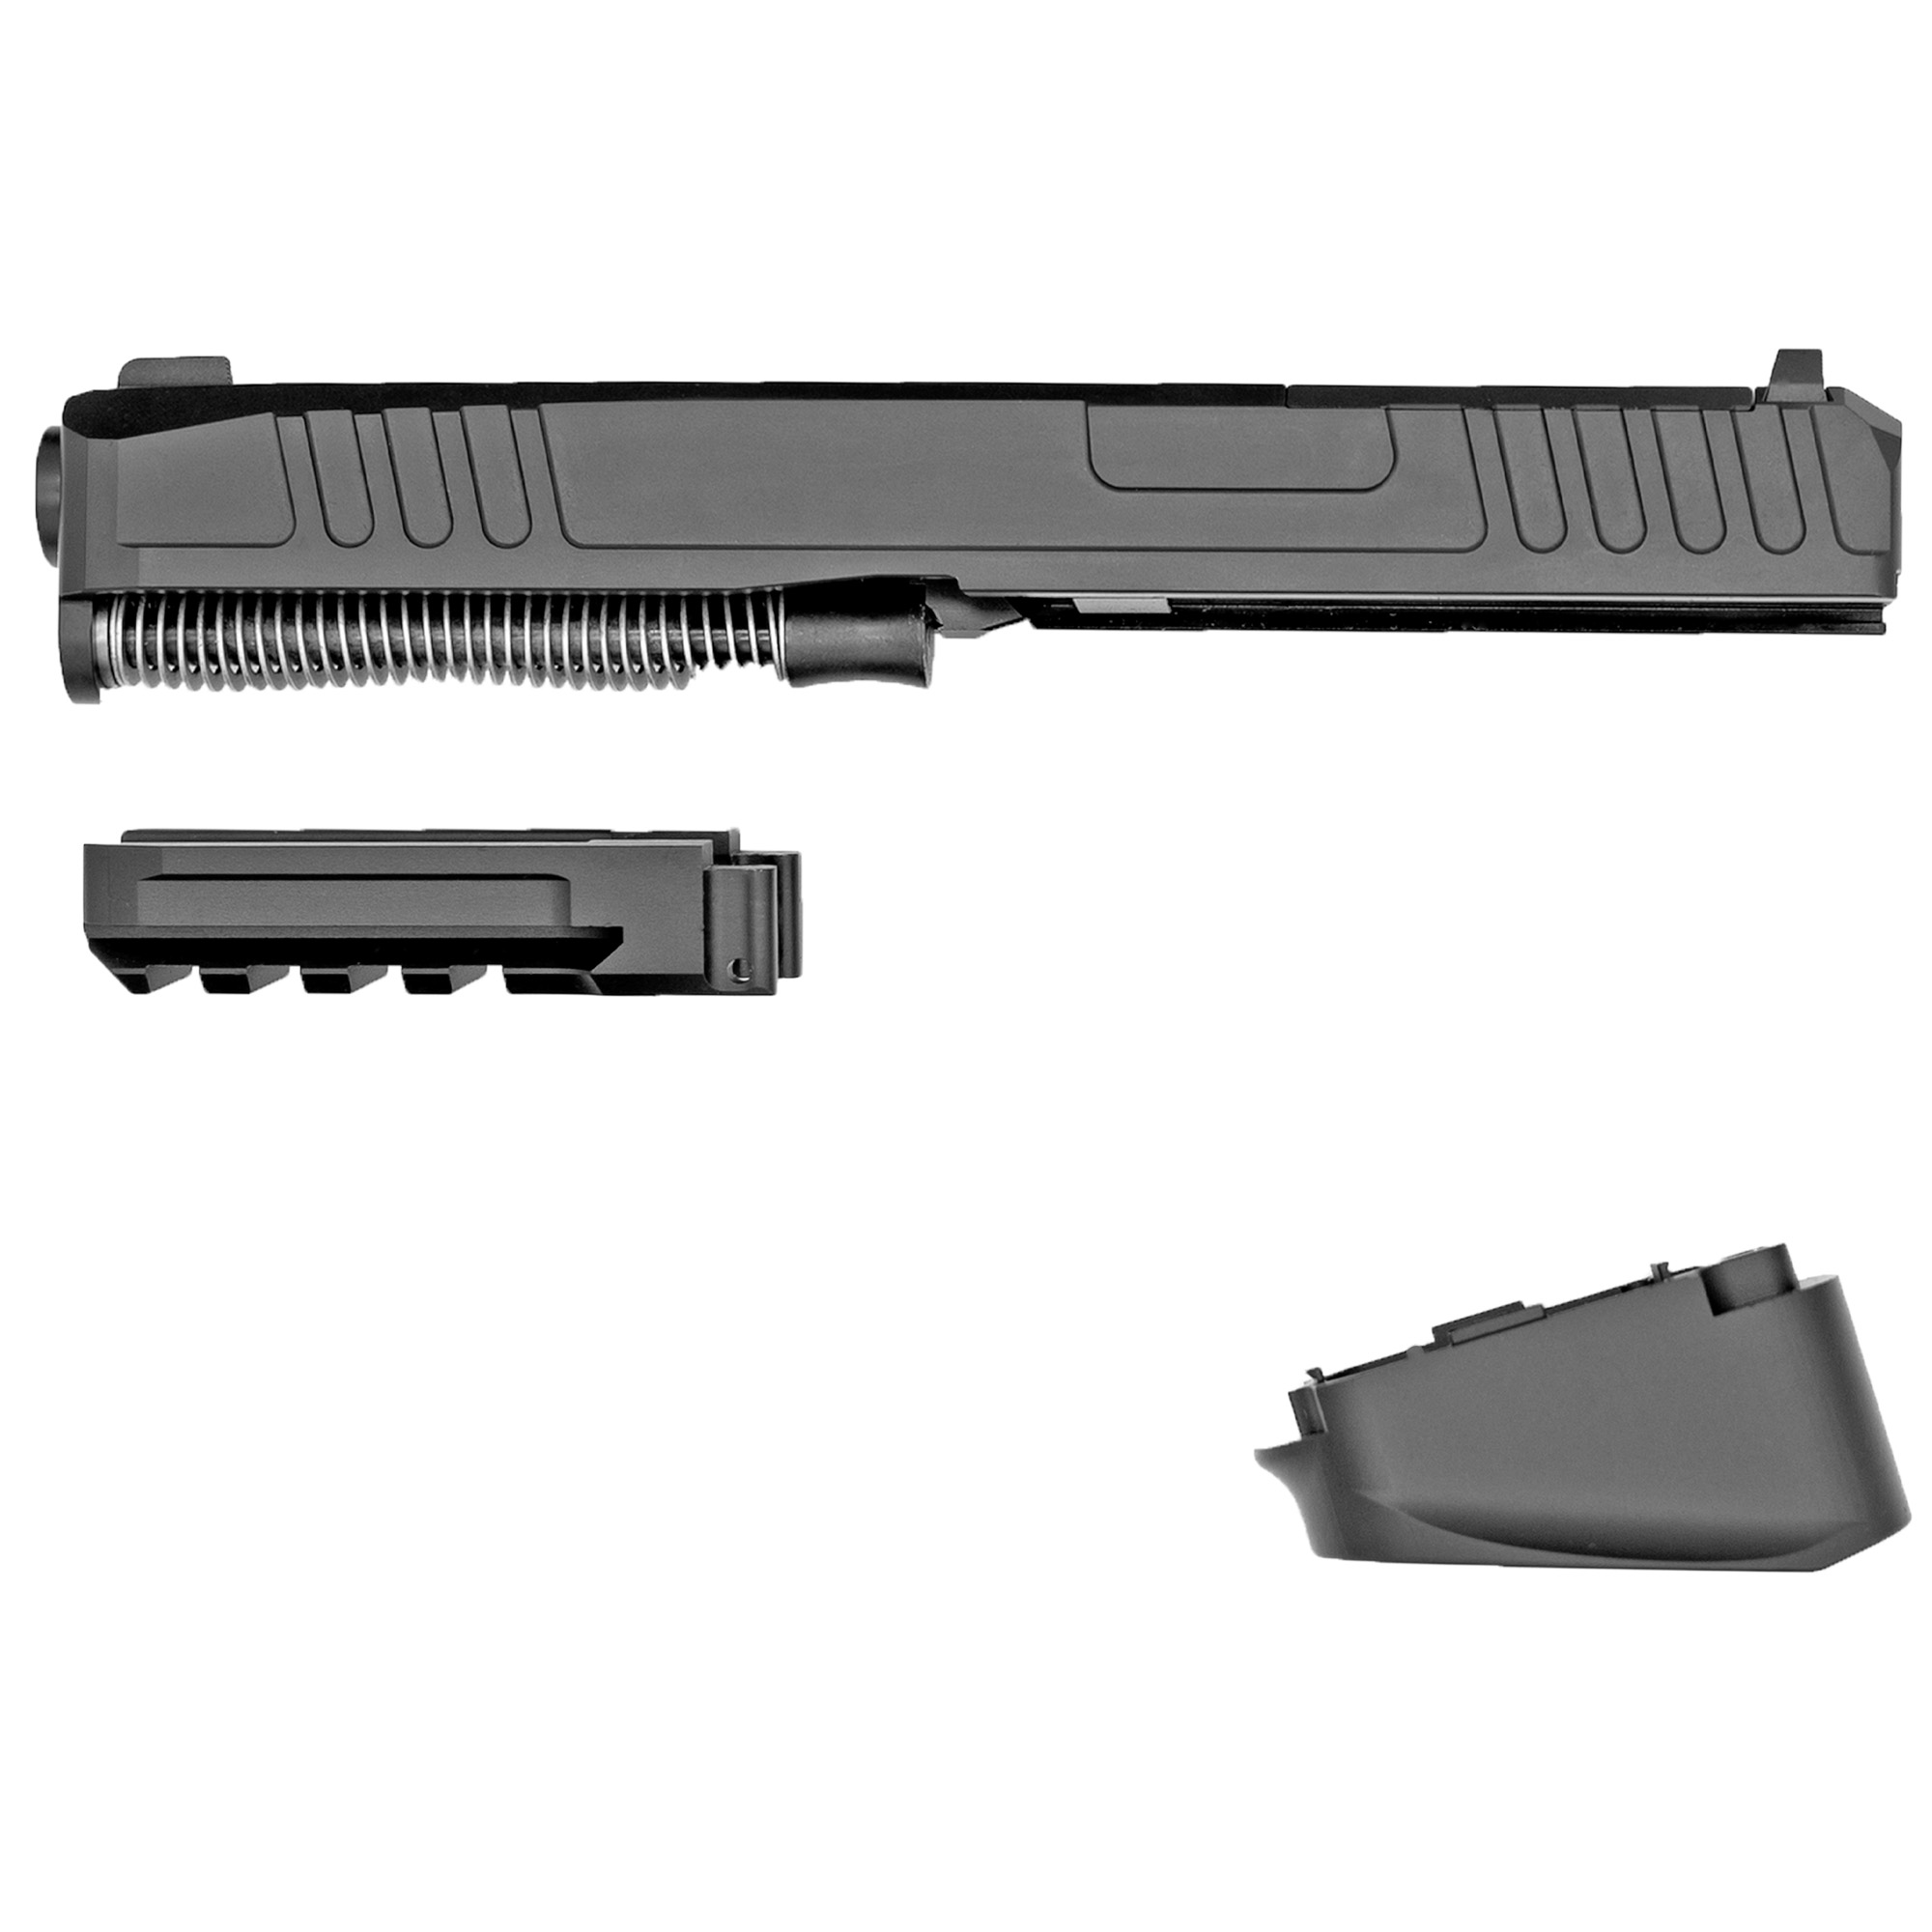 Zrod Modulus Duty Conversion Blk